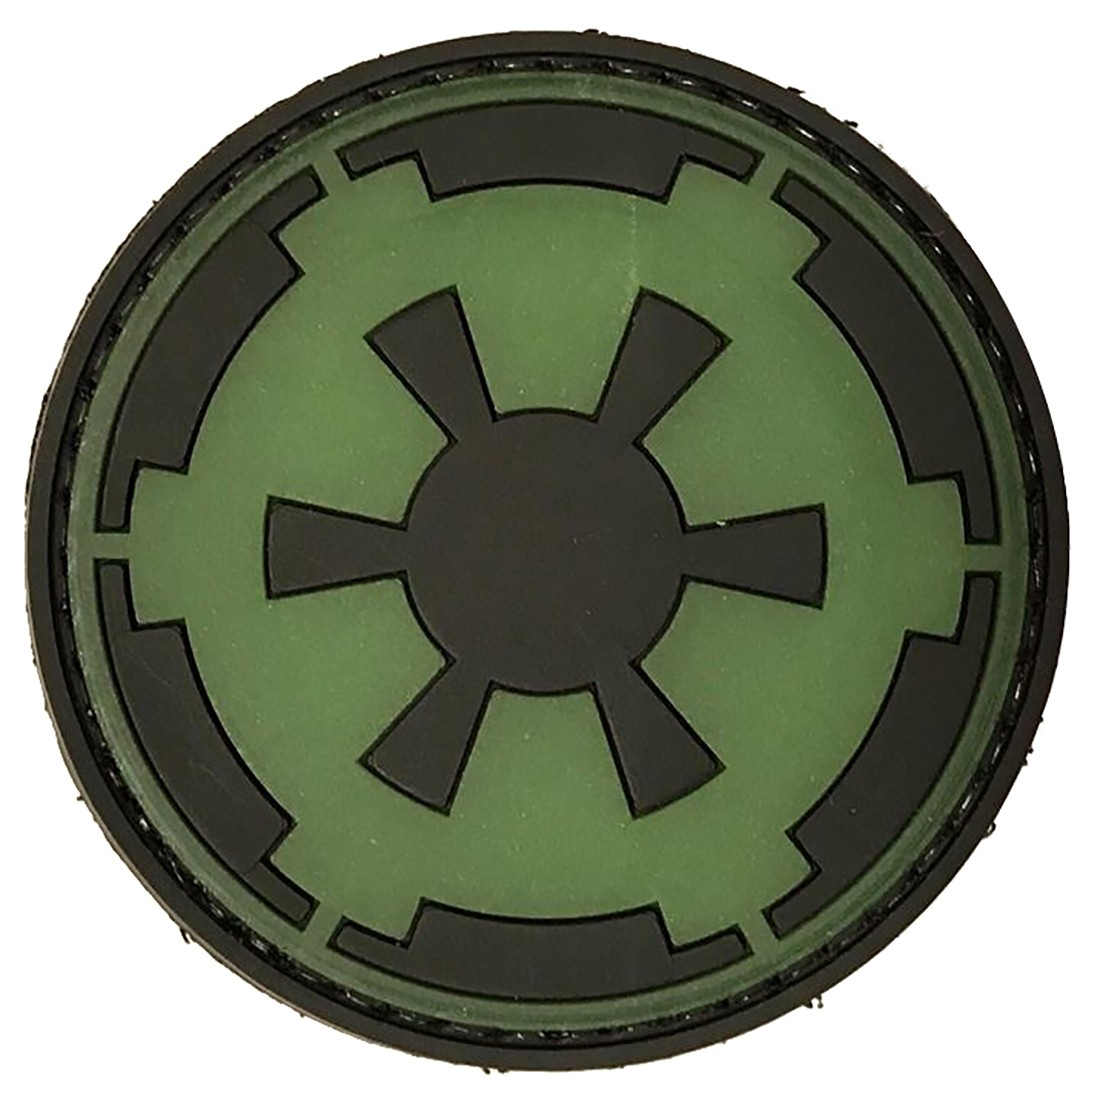 STAR WARS IMPERIAL Tactical Rubber Velcro Patches